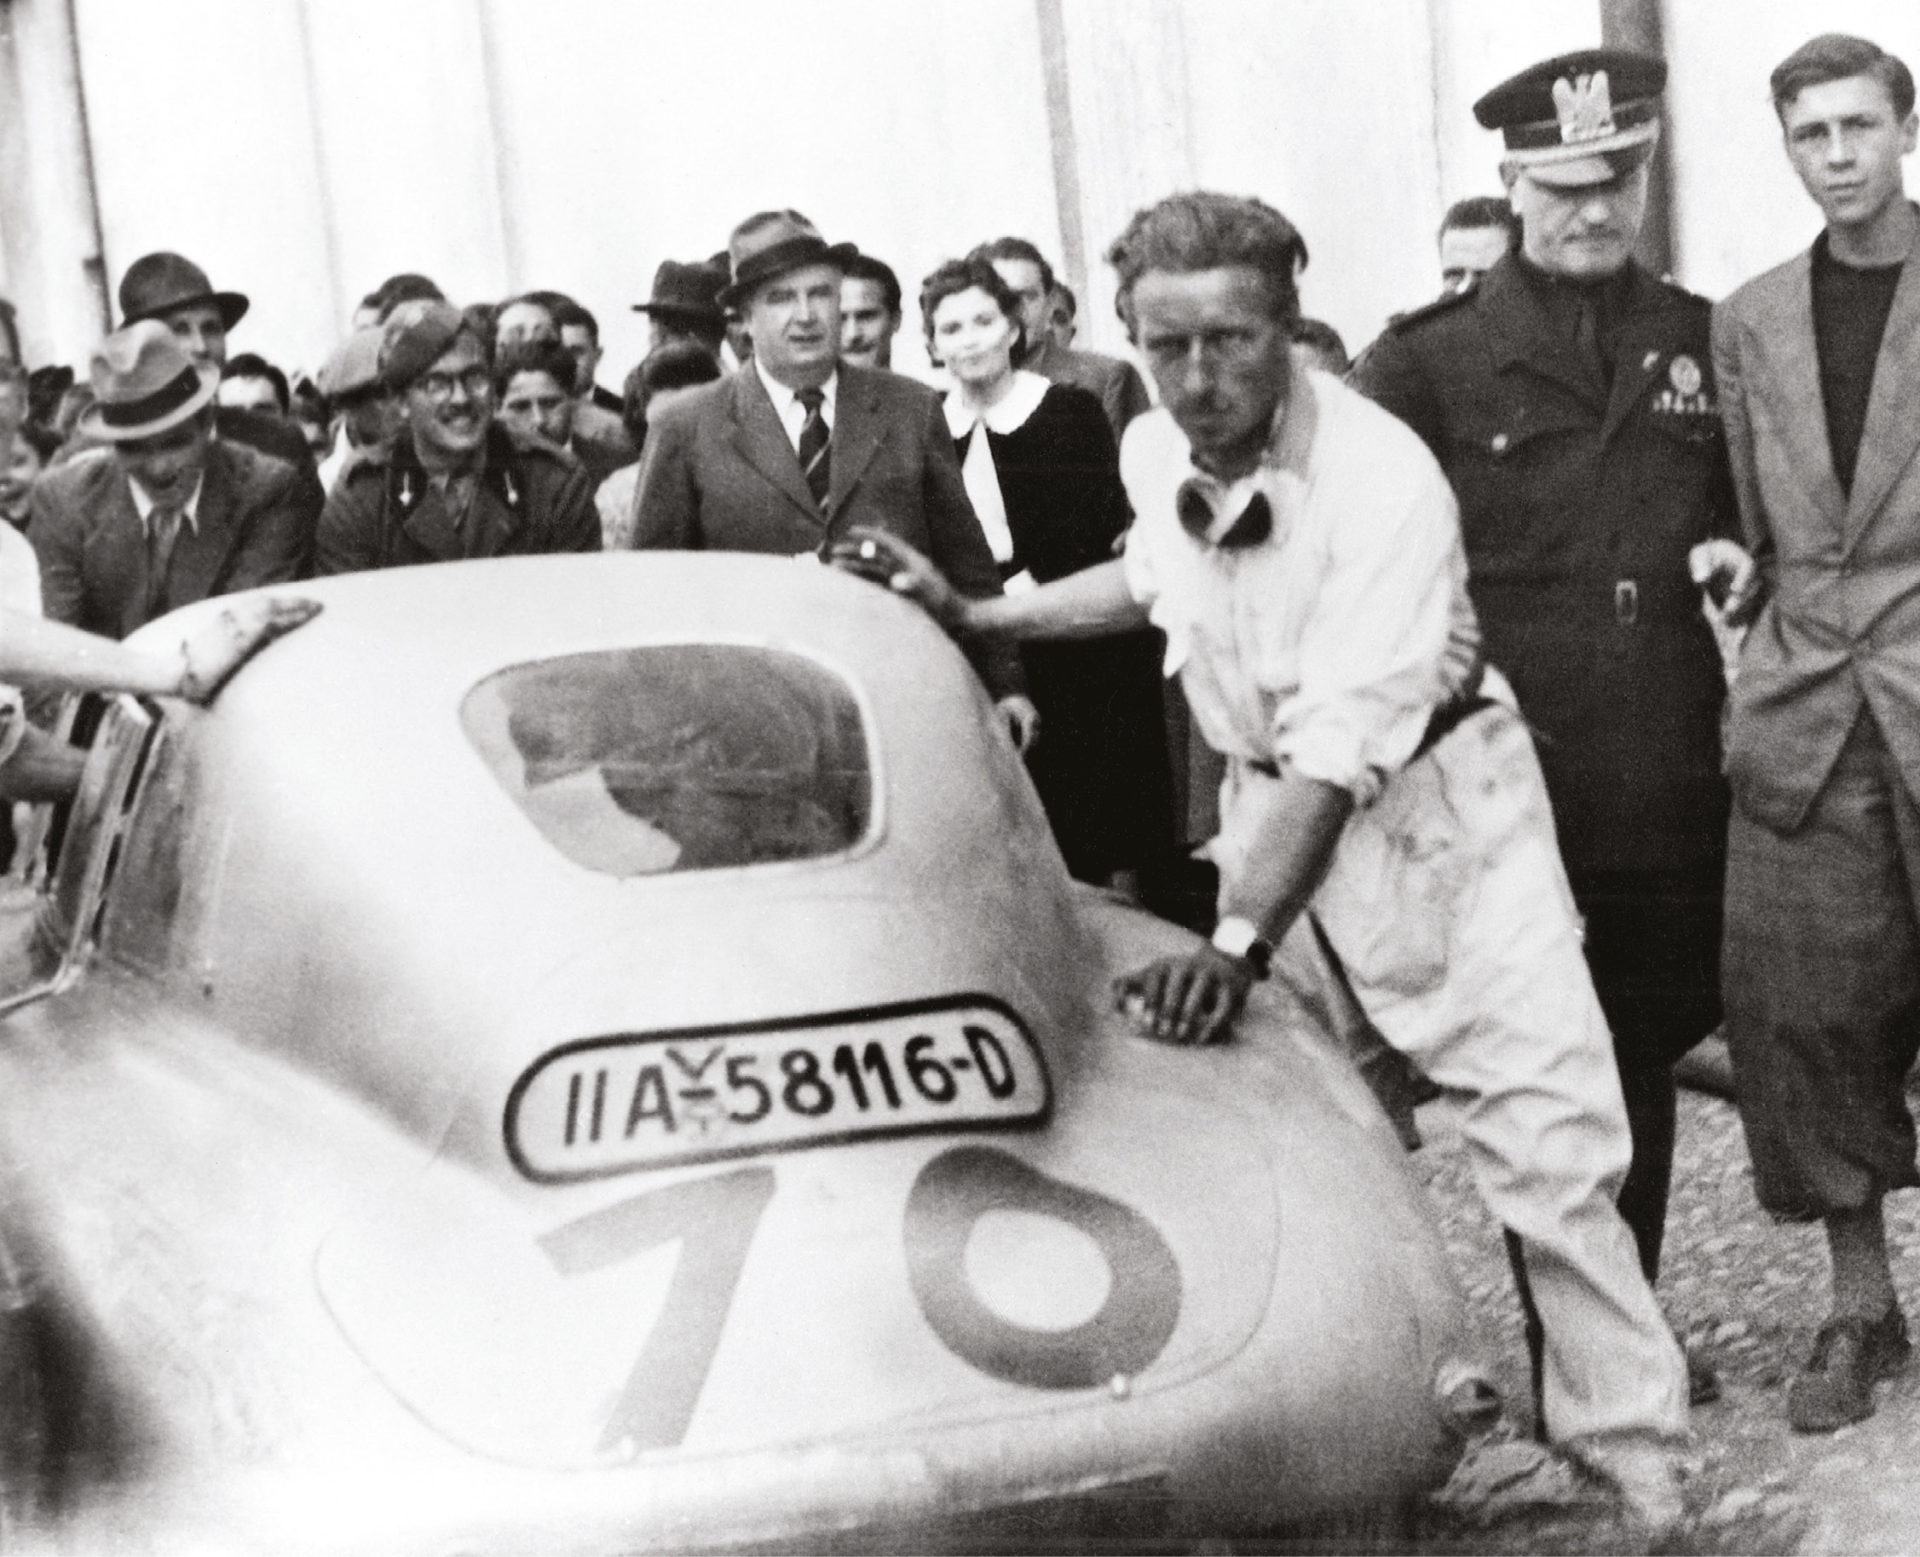 Prepare to win: Walter Bäumer, one of the winning drivers, leans on the Touring Coupé before the 1940 Mille Miglia